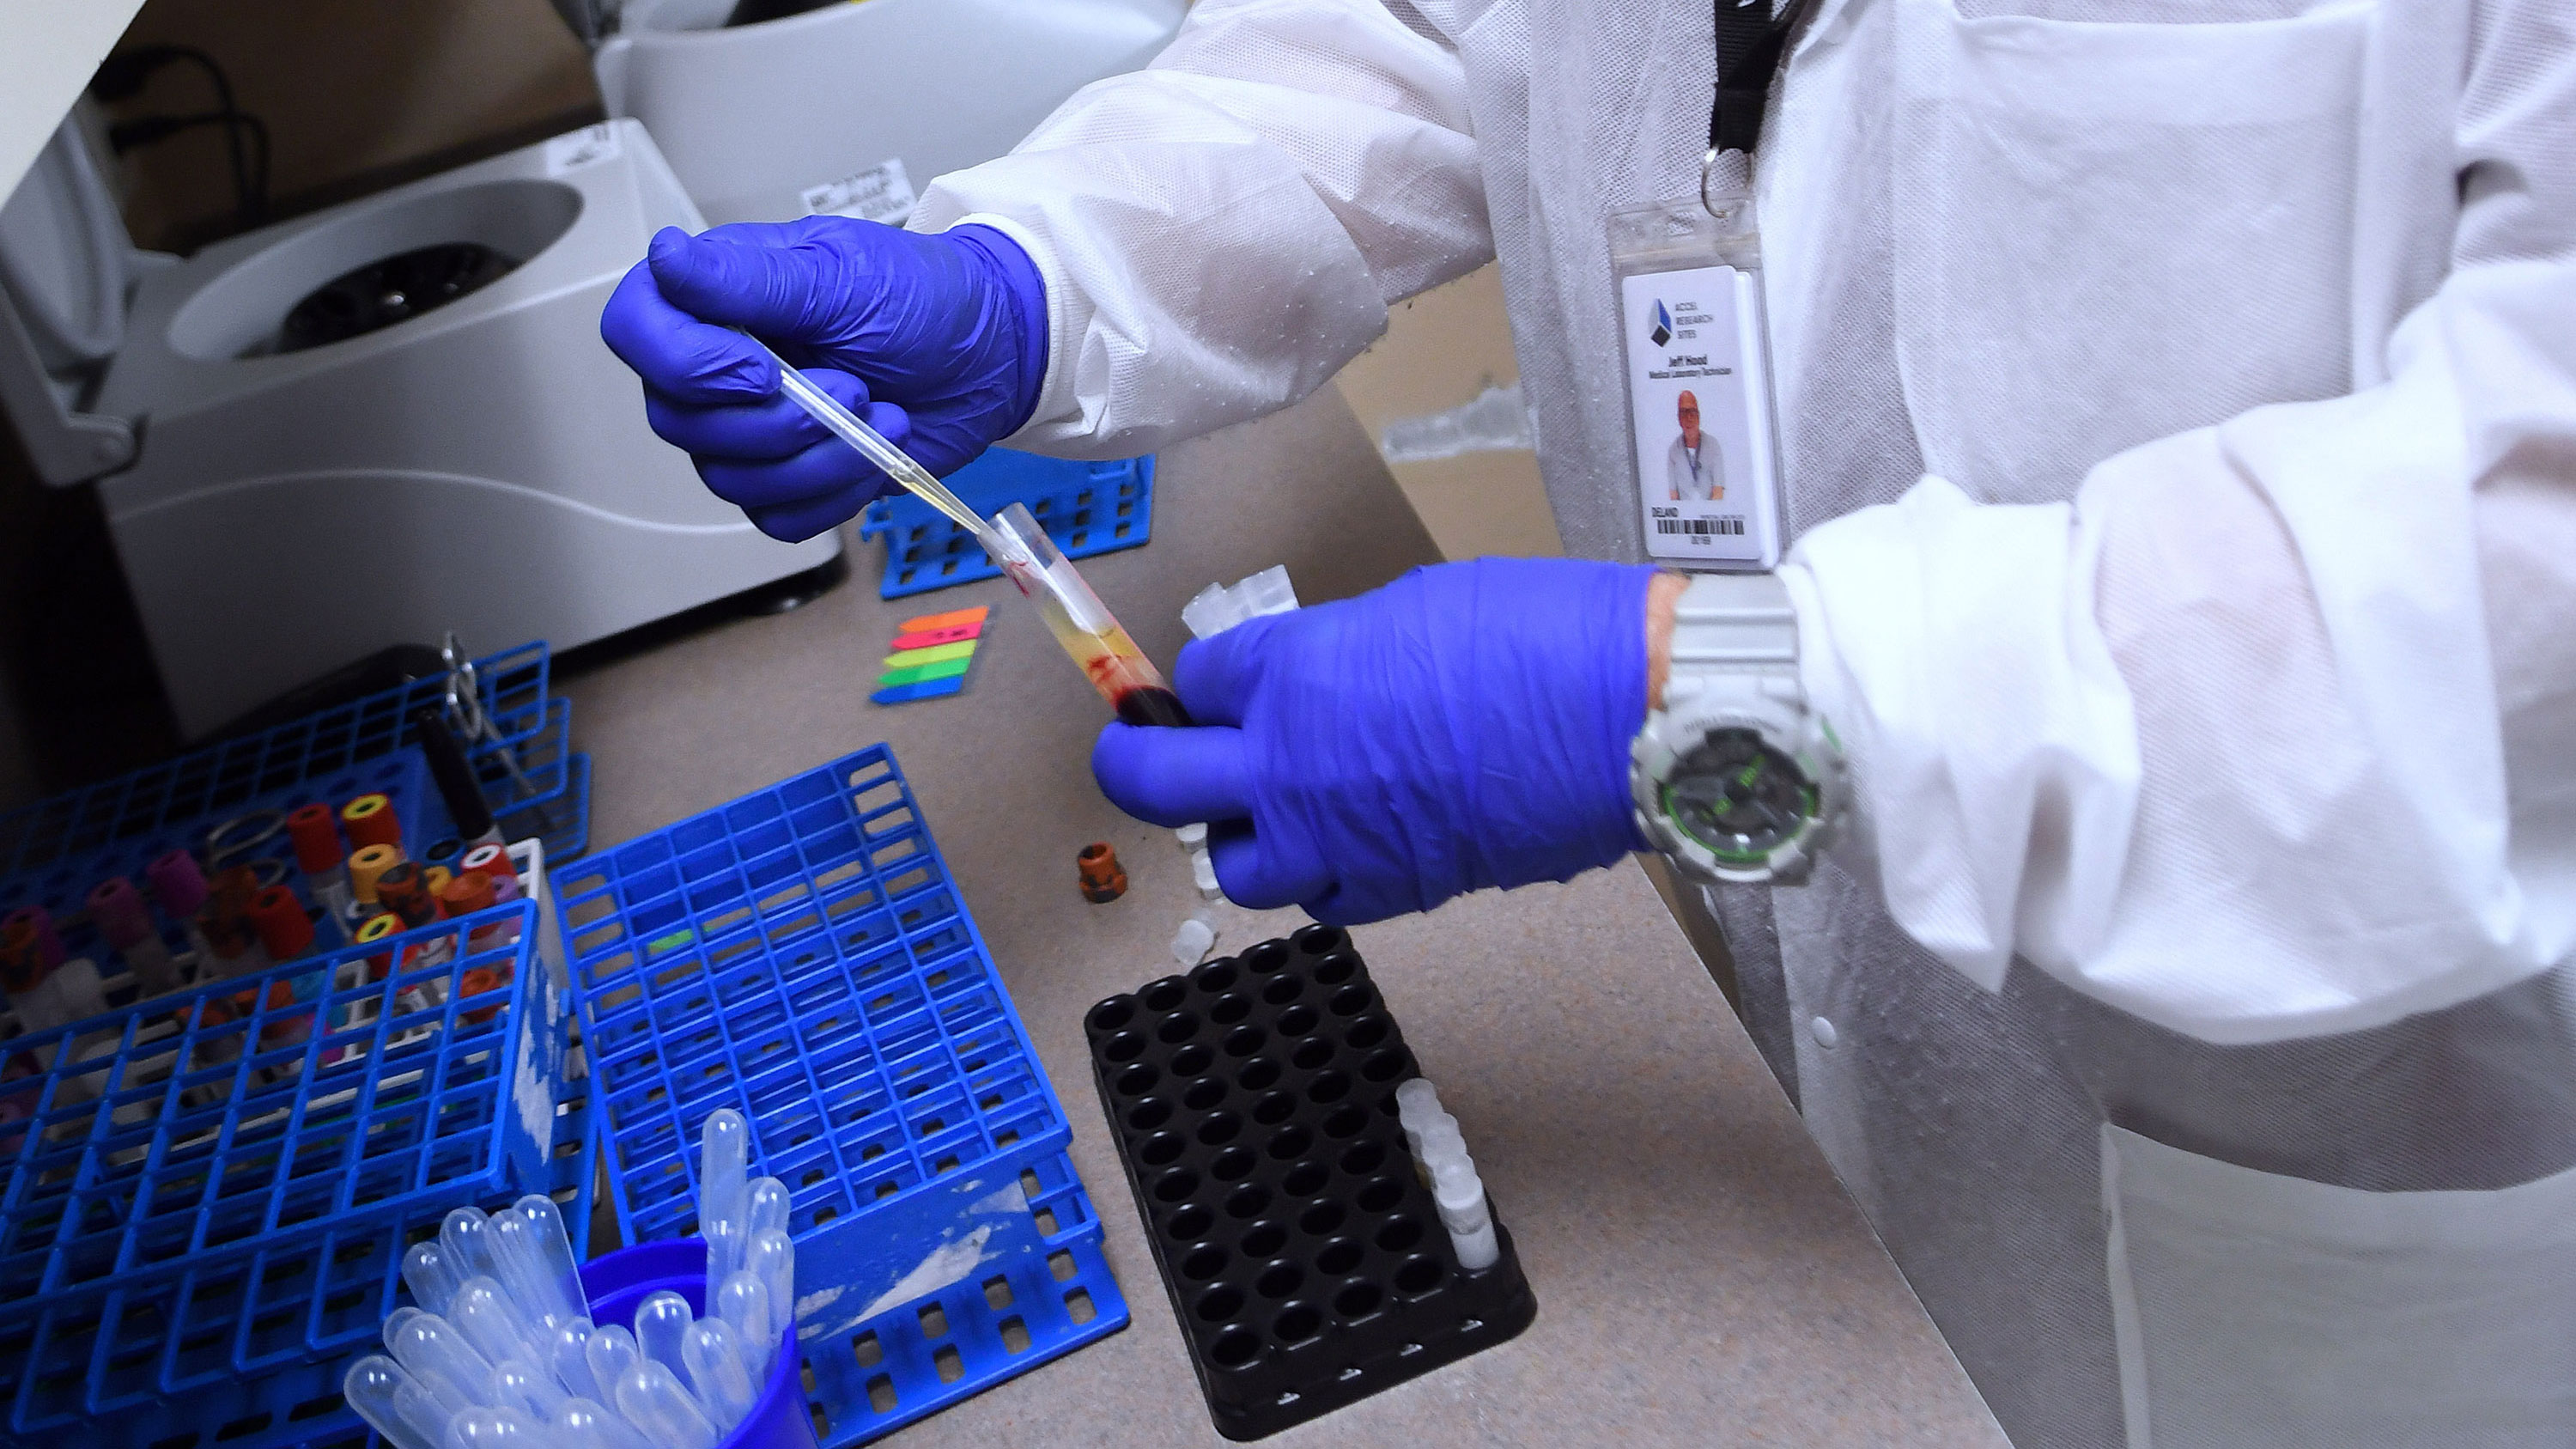 A laboratory technician at Accel Research Sites prepares a blood sample for analysis as part of the Moderna Covid-19 vaccine trial on August 4 in DeLand, Florida.